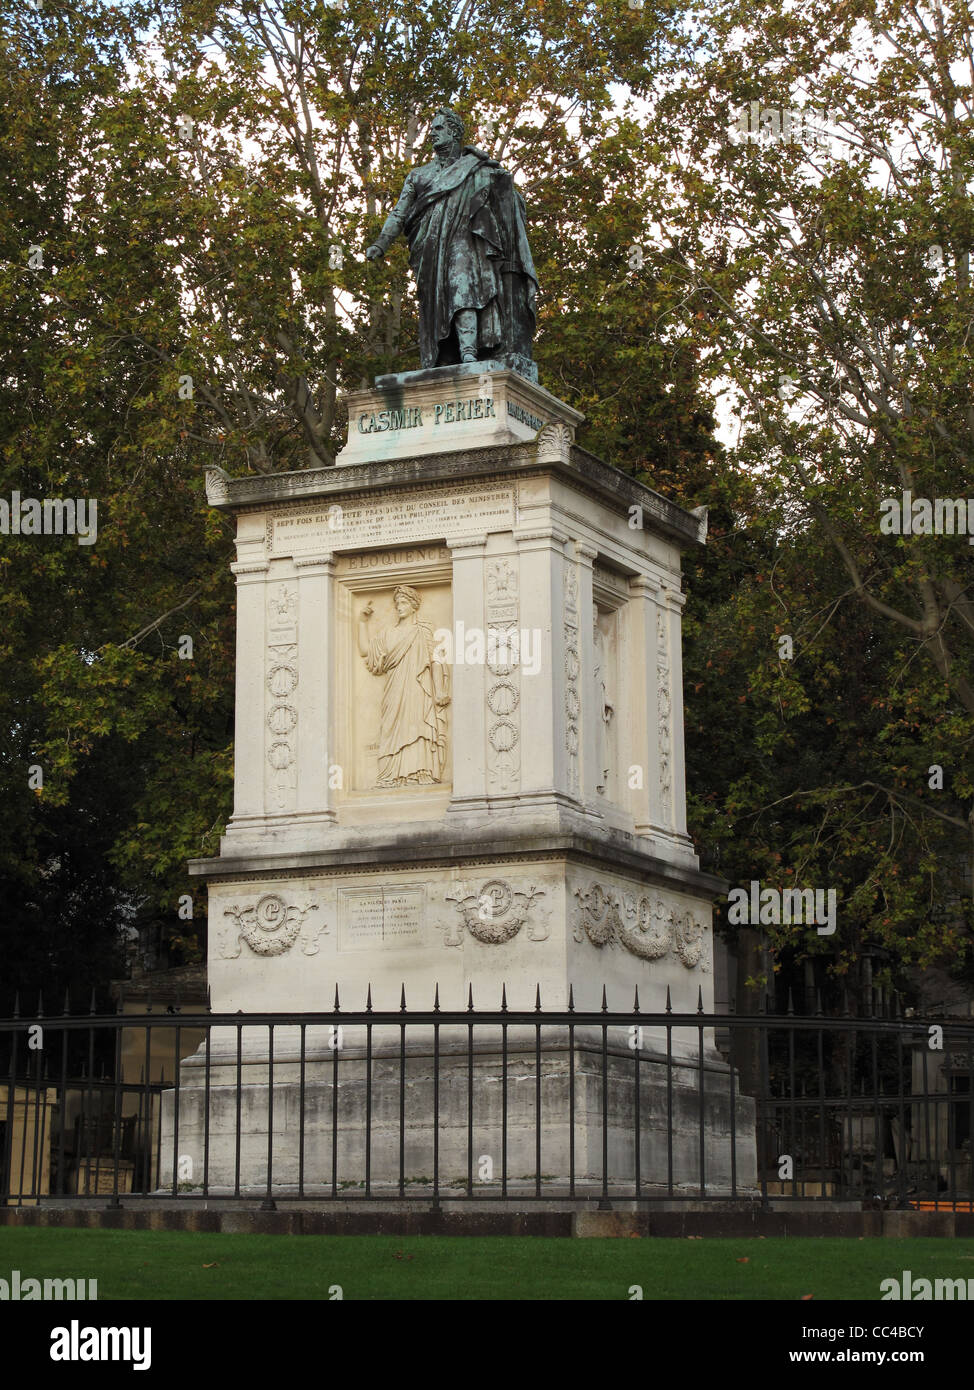 Pere-Lachaise, cemetery, Paris, France, is the largest cemetery of Paris, grave of Casimir Perier french statesman - Stock Image